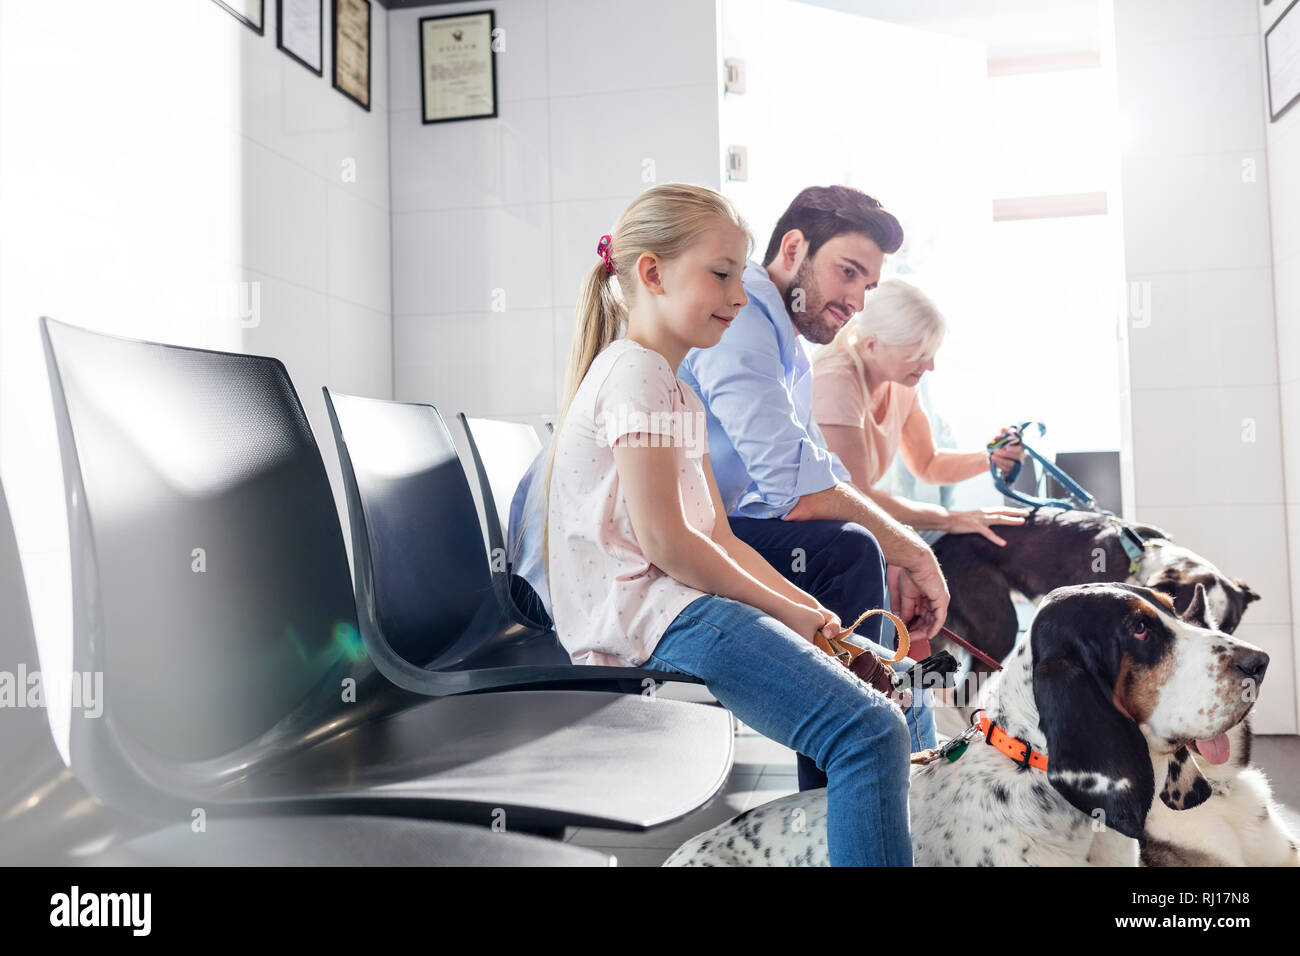 Pet owners waiting with dogs at veterinary clinic Stock Photo